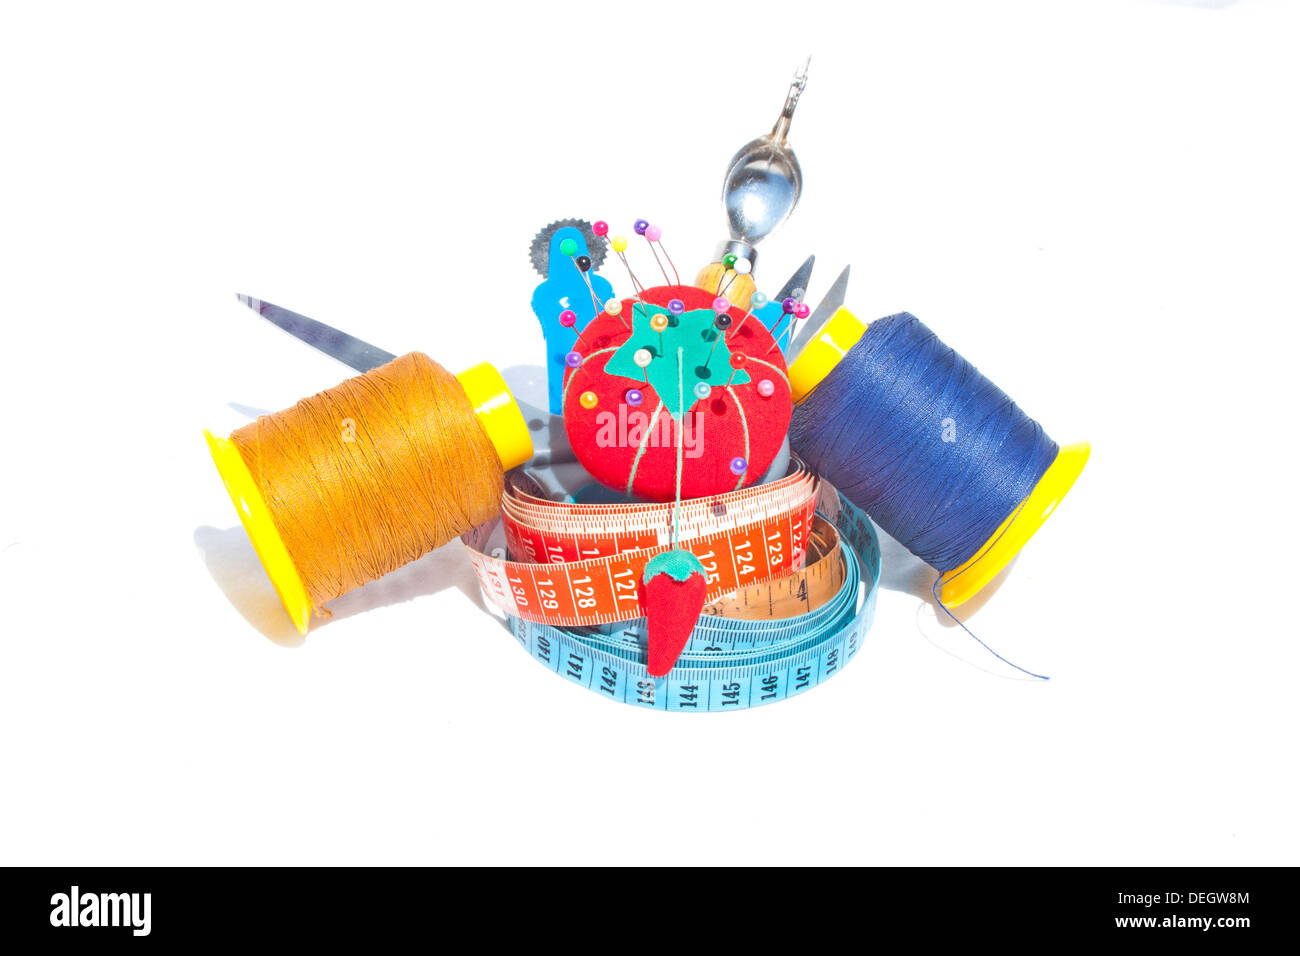 Three measuring tapes with reels of cotton and sewing accessories Stock Photo